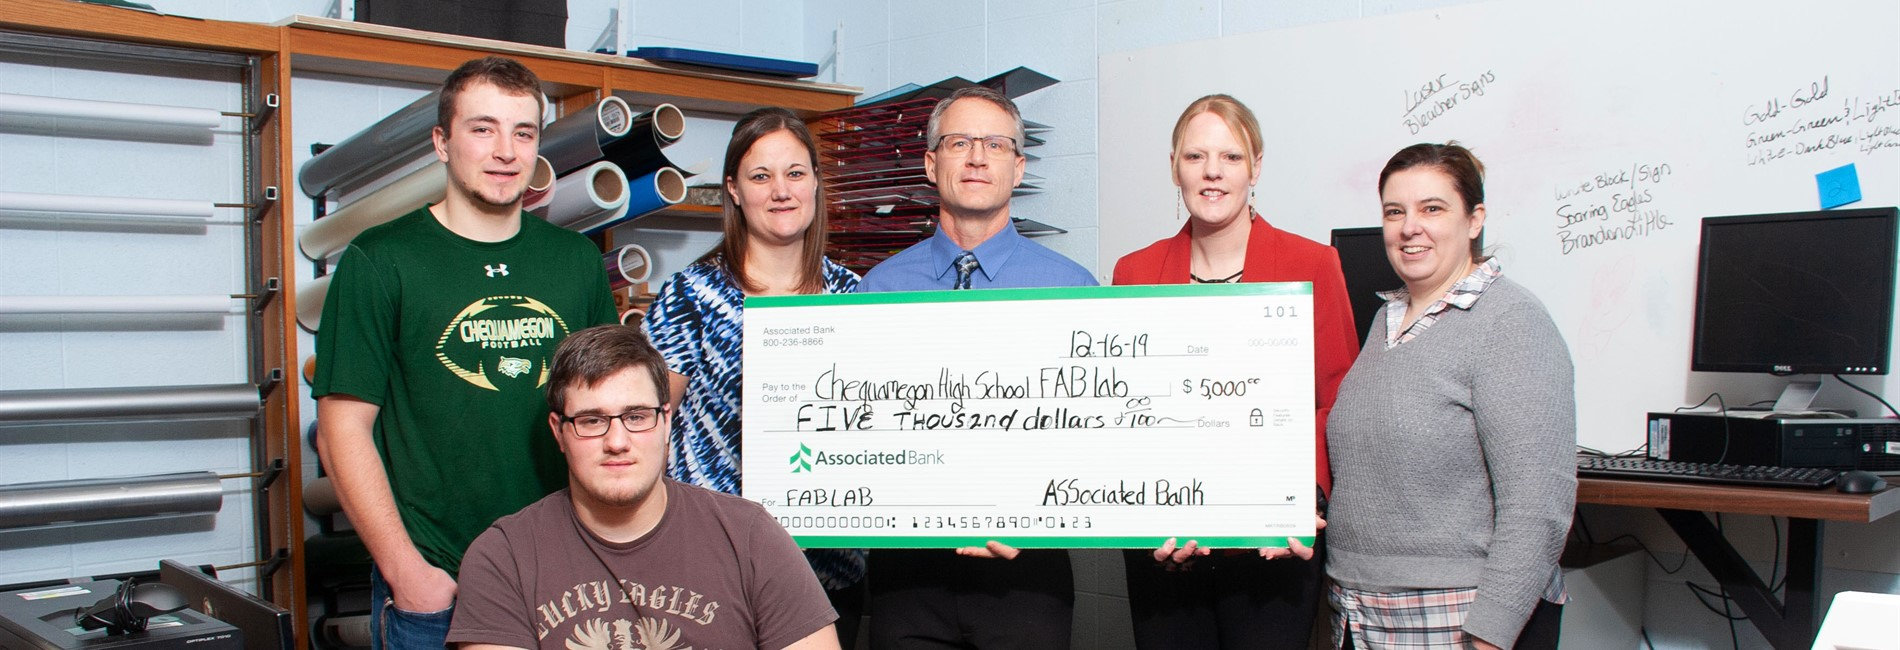 The Chequamegon STEAM Class receives a grant from Associated Bank.